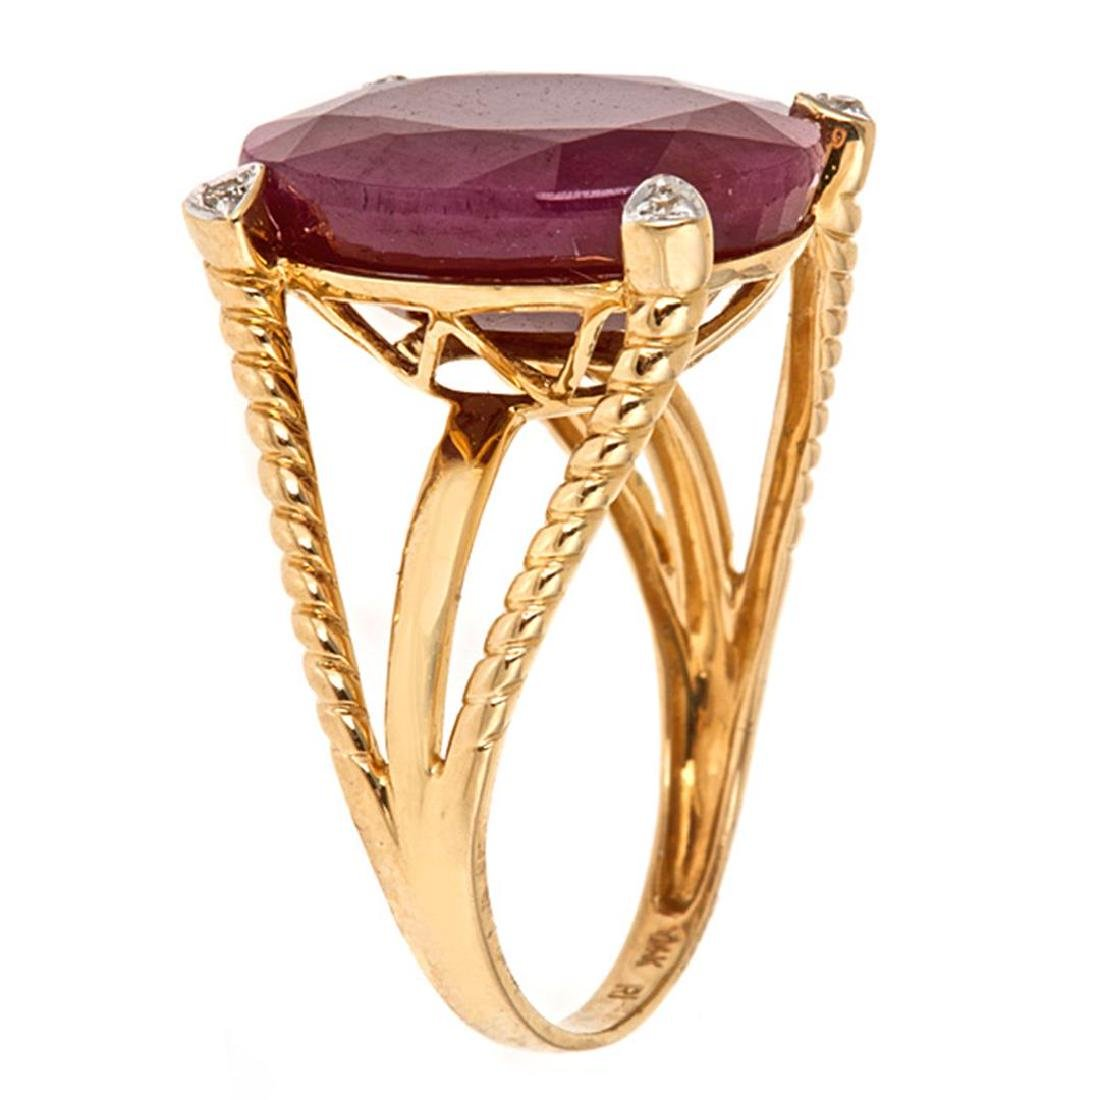 12.48 ctw Ruby and Diamond Ring - 14KT Yellow Gold - 2